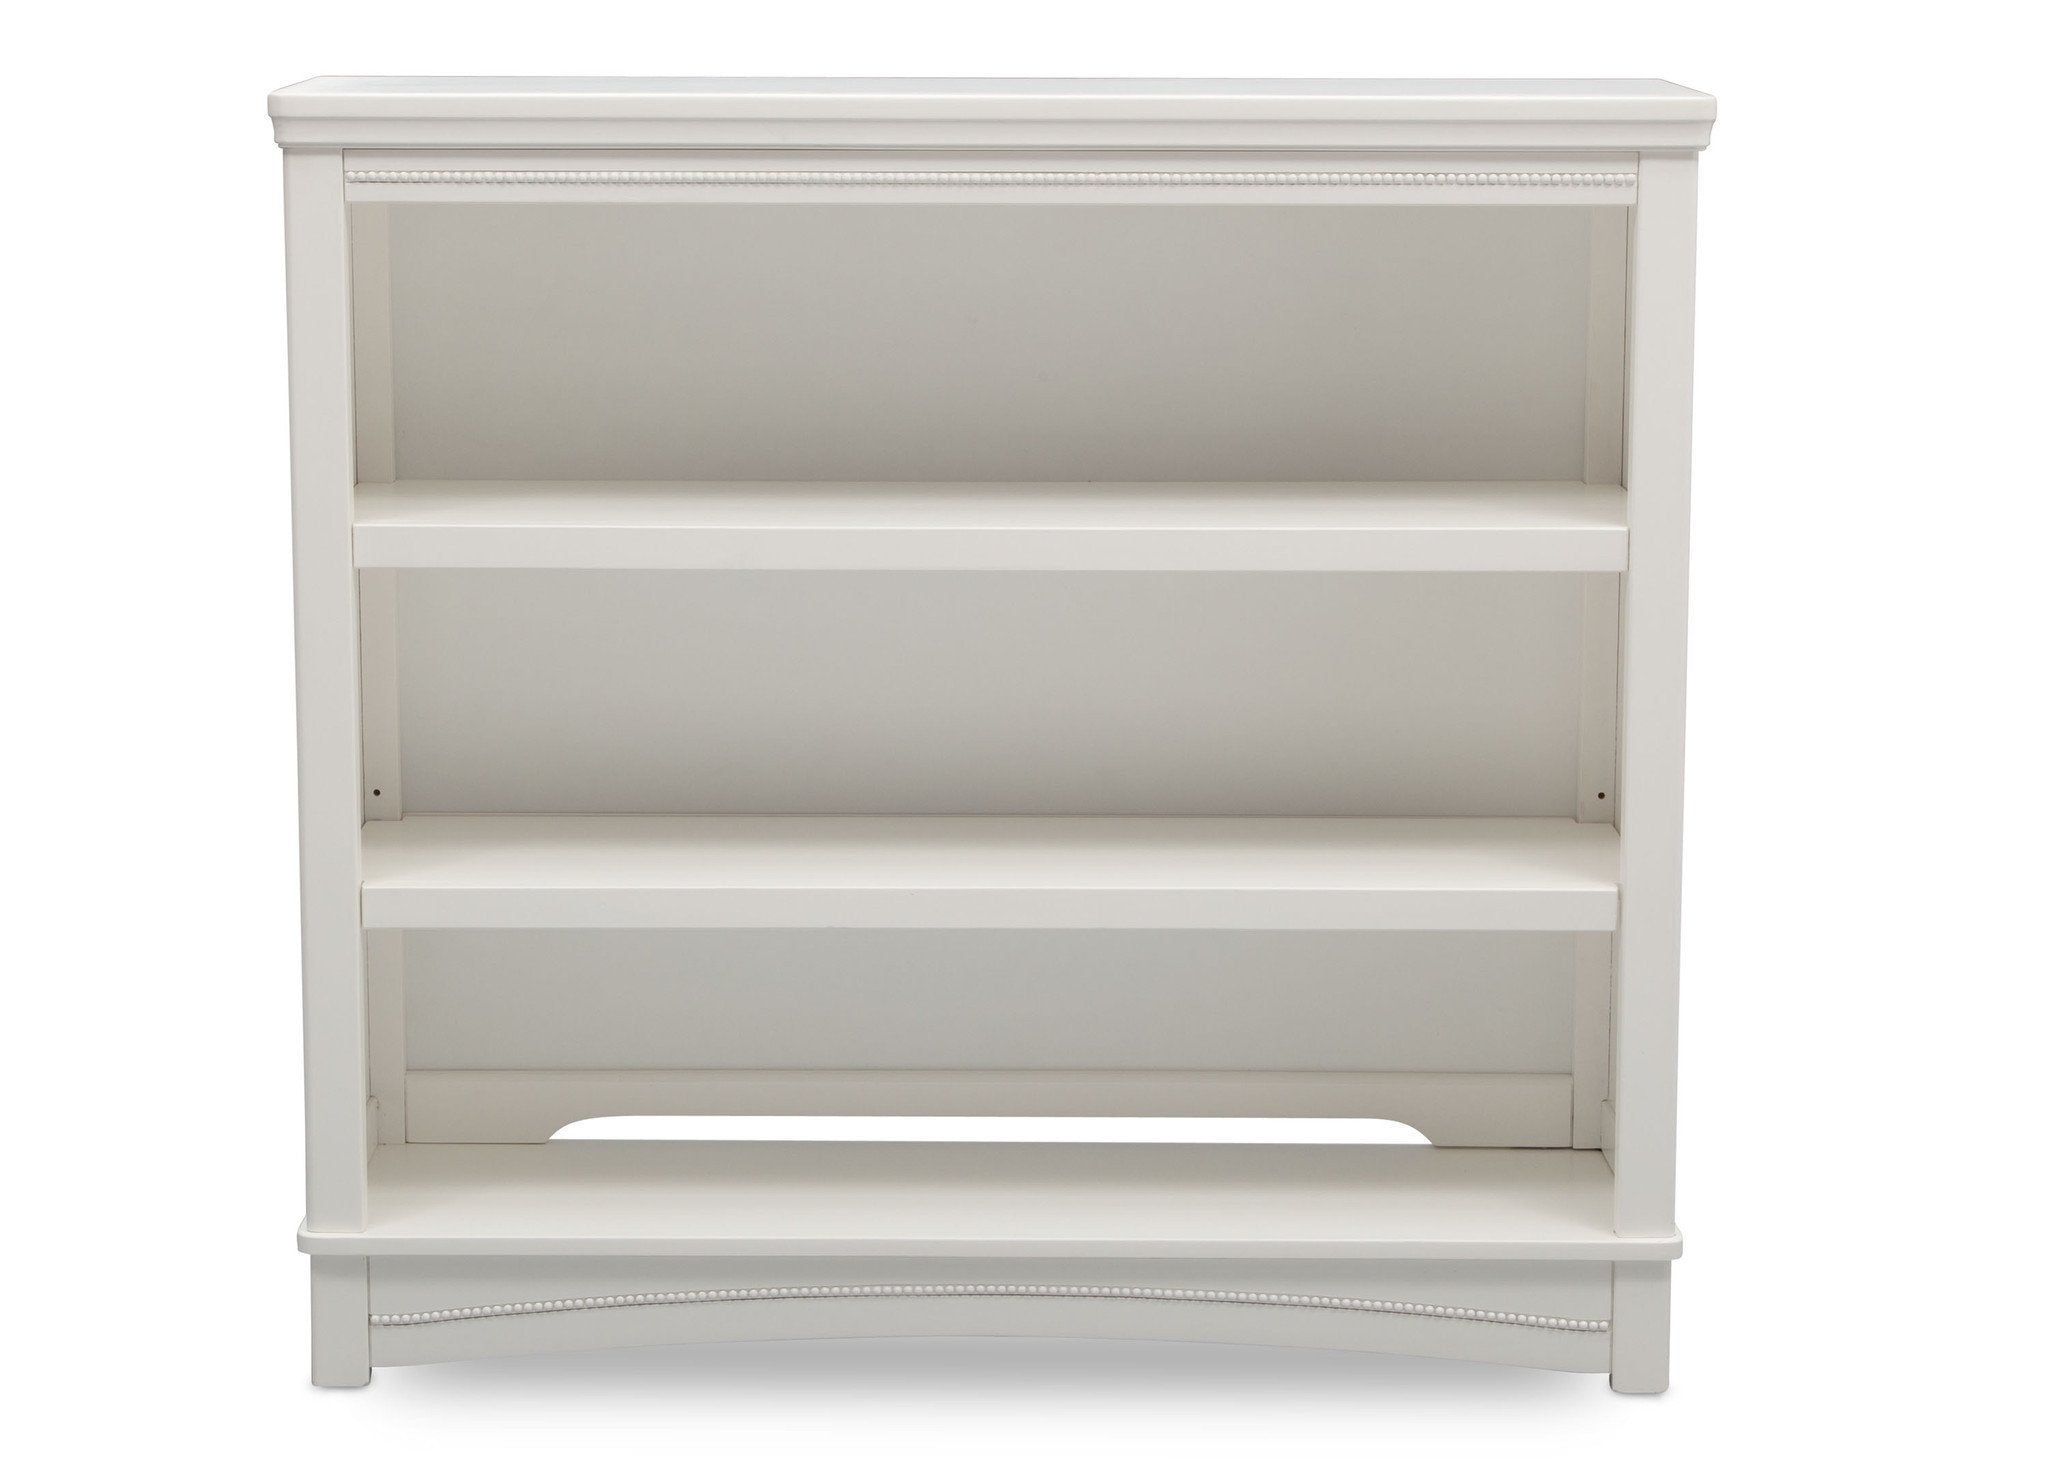 Delta Children White Ambiance (108) Lindsey Bookcase/Hutch, Front View, a1a